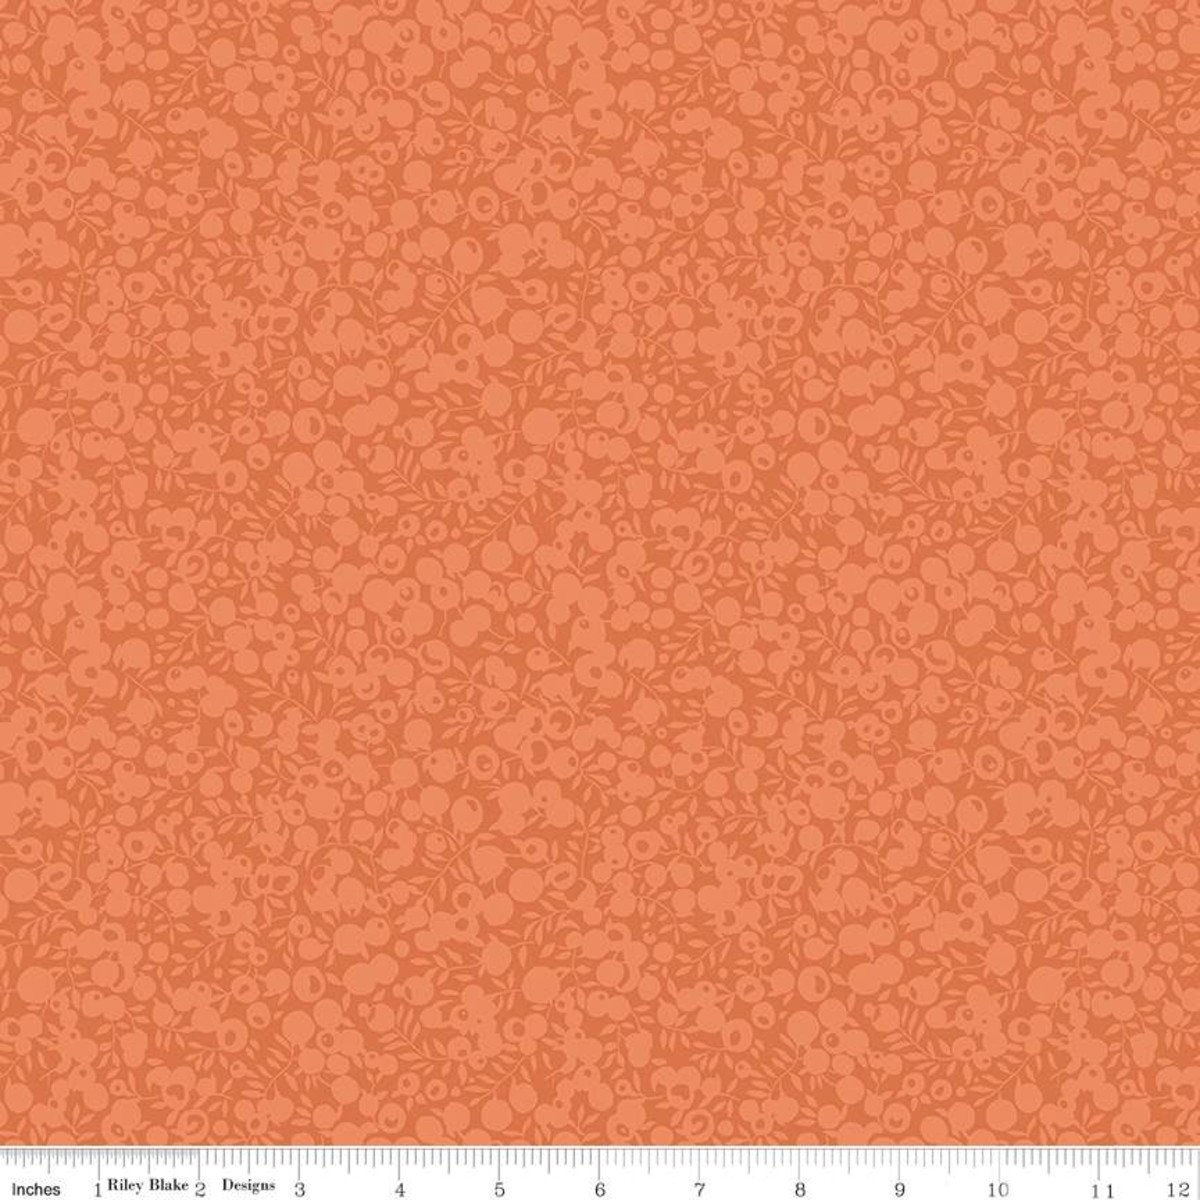 Wiltshire Shadow Collection - Clementine